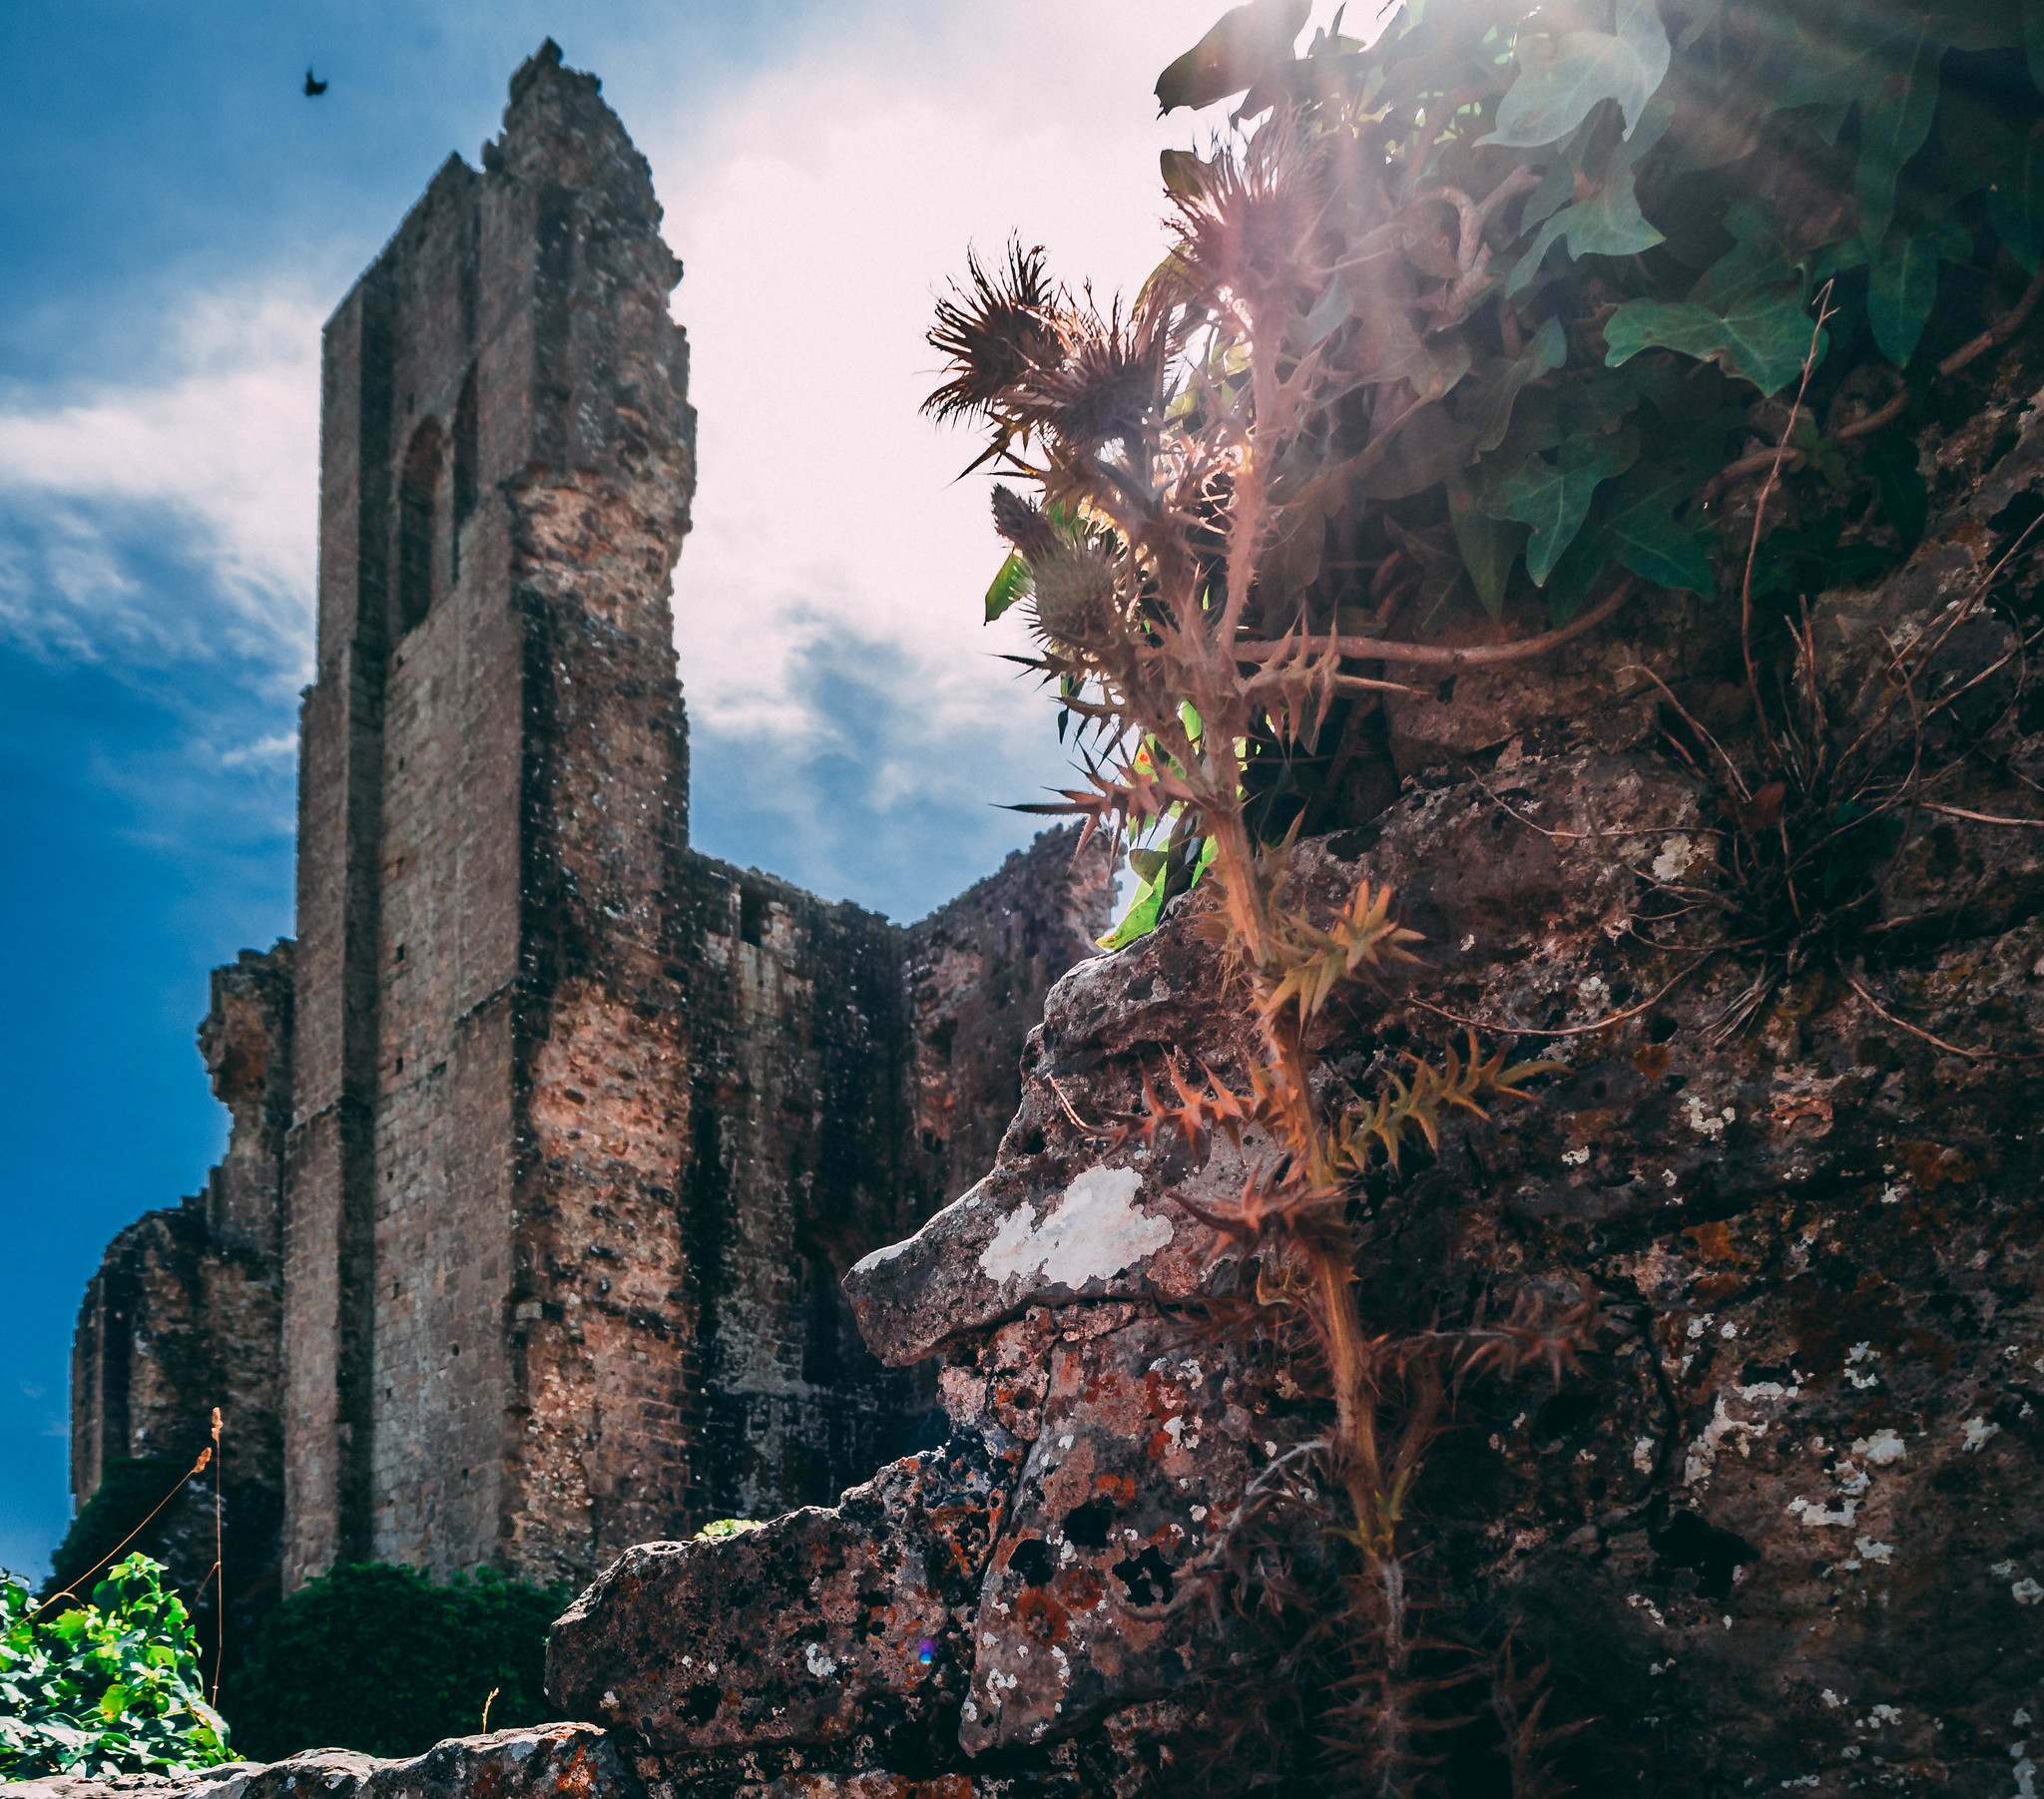 Corfe Castle Ruins - The Plants Reclaiming